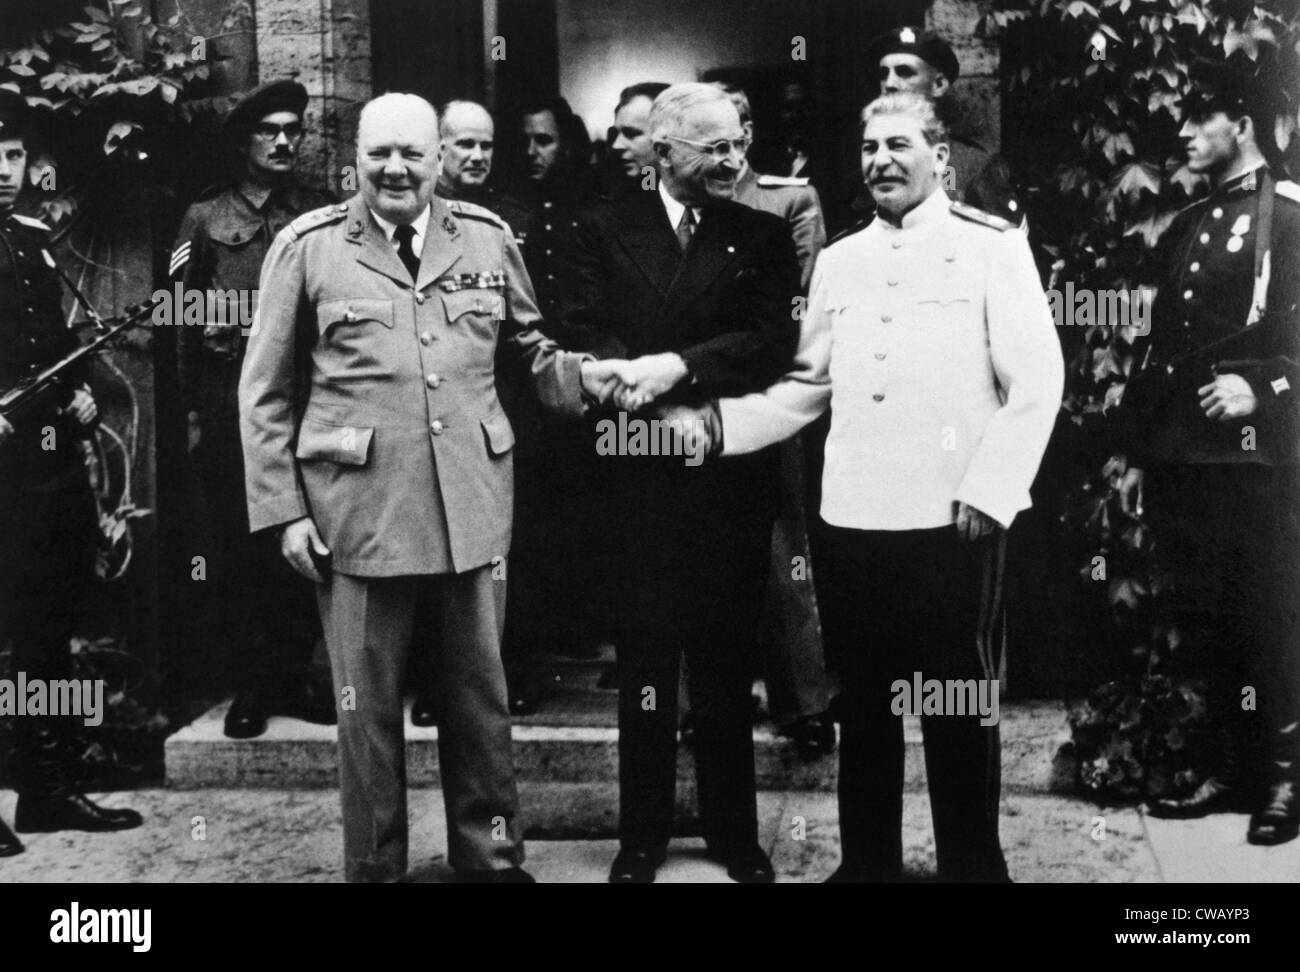 The Potsdam Conference, Winston Churchill, Harry S. Truman and Joseph Stalin, 1945. - Stock Image